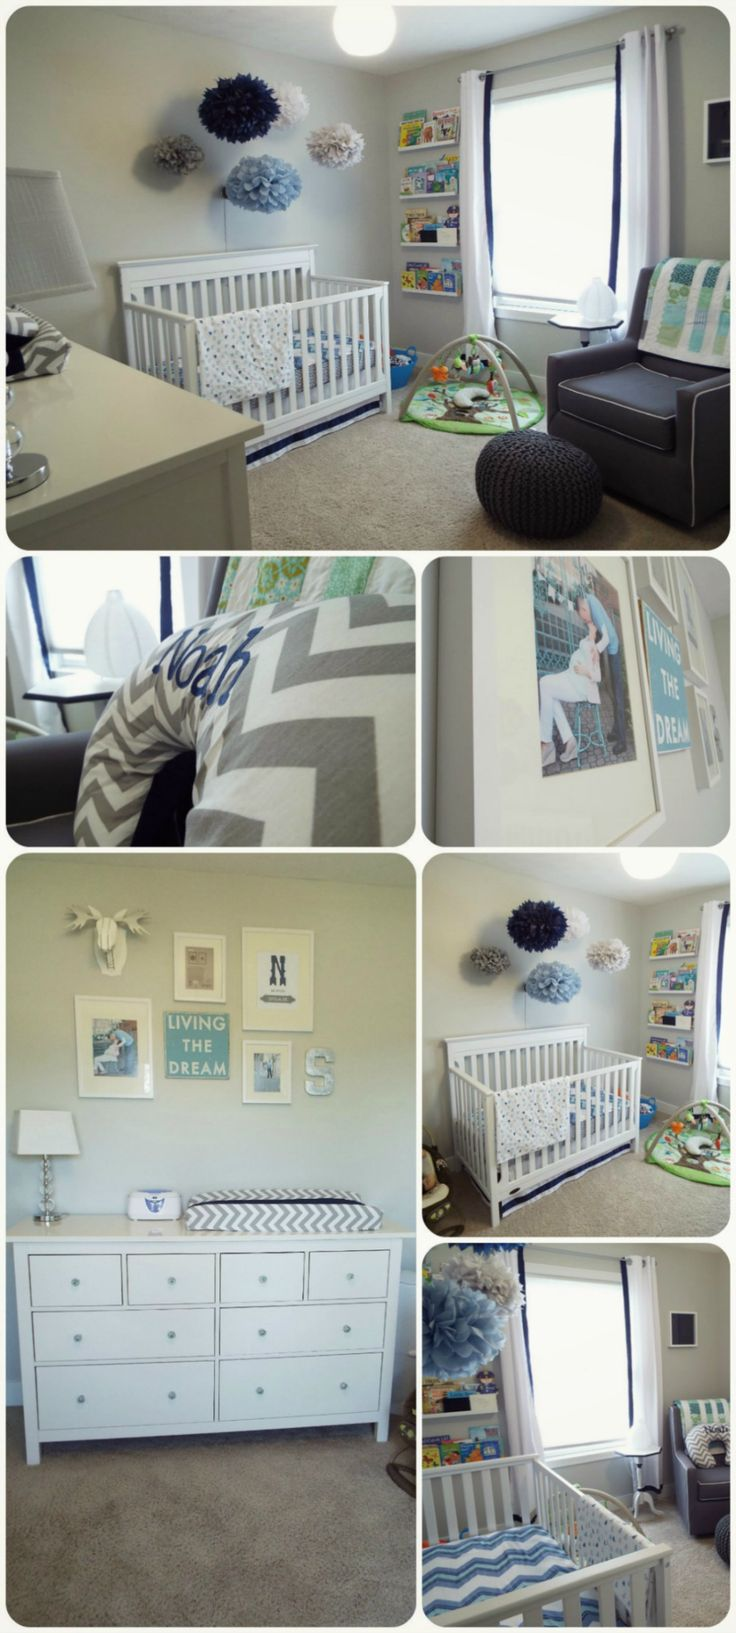 Boy Ikea Nursery. Navy, Grey & White http://alltheprettythings-cristina.blogspot.com/